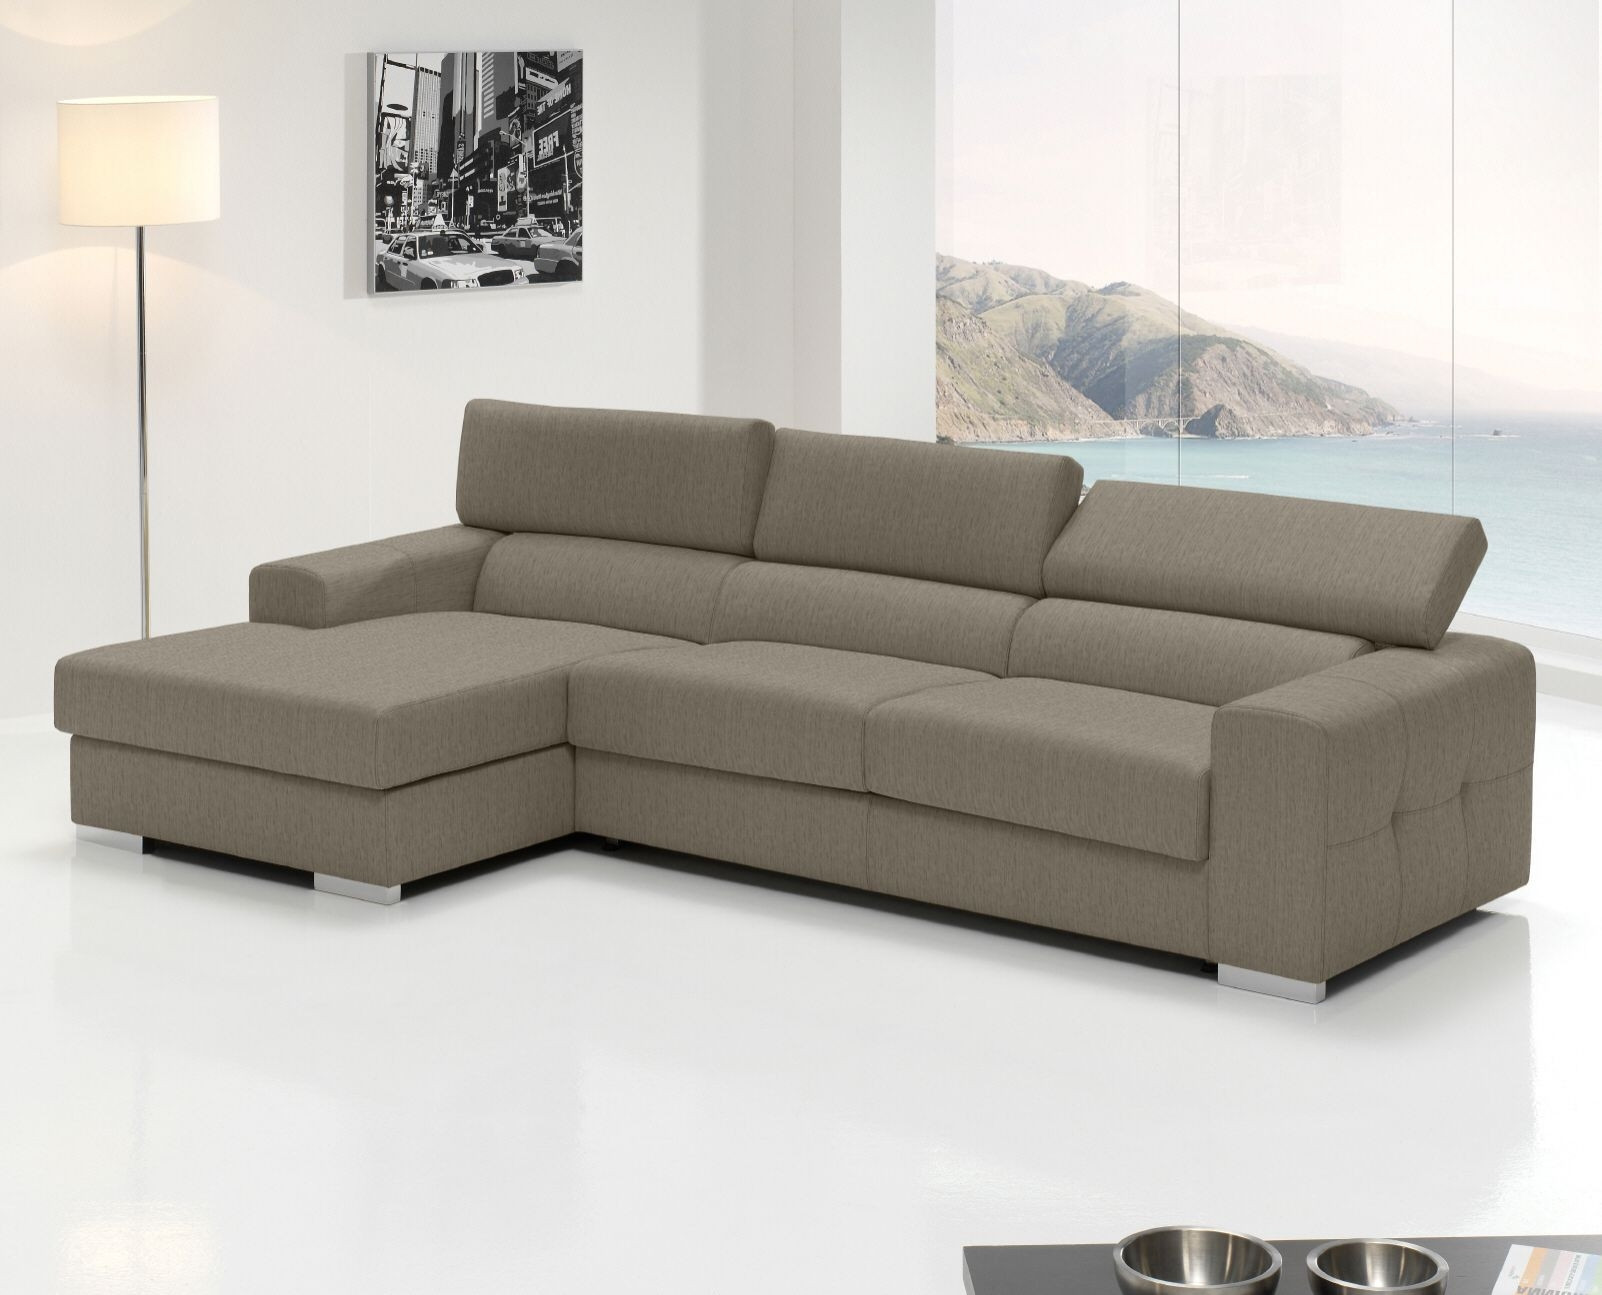 Chaise Longue Cama Baratos Magnífica sofás Cama Baratos En 3 Plazas Cama Chaise Longue Of Chaise Longue Cama Baratos Contemporáneo sofás Con Chaise Longue sofás Modernos